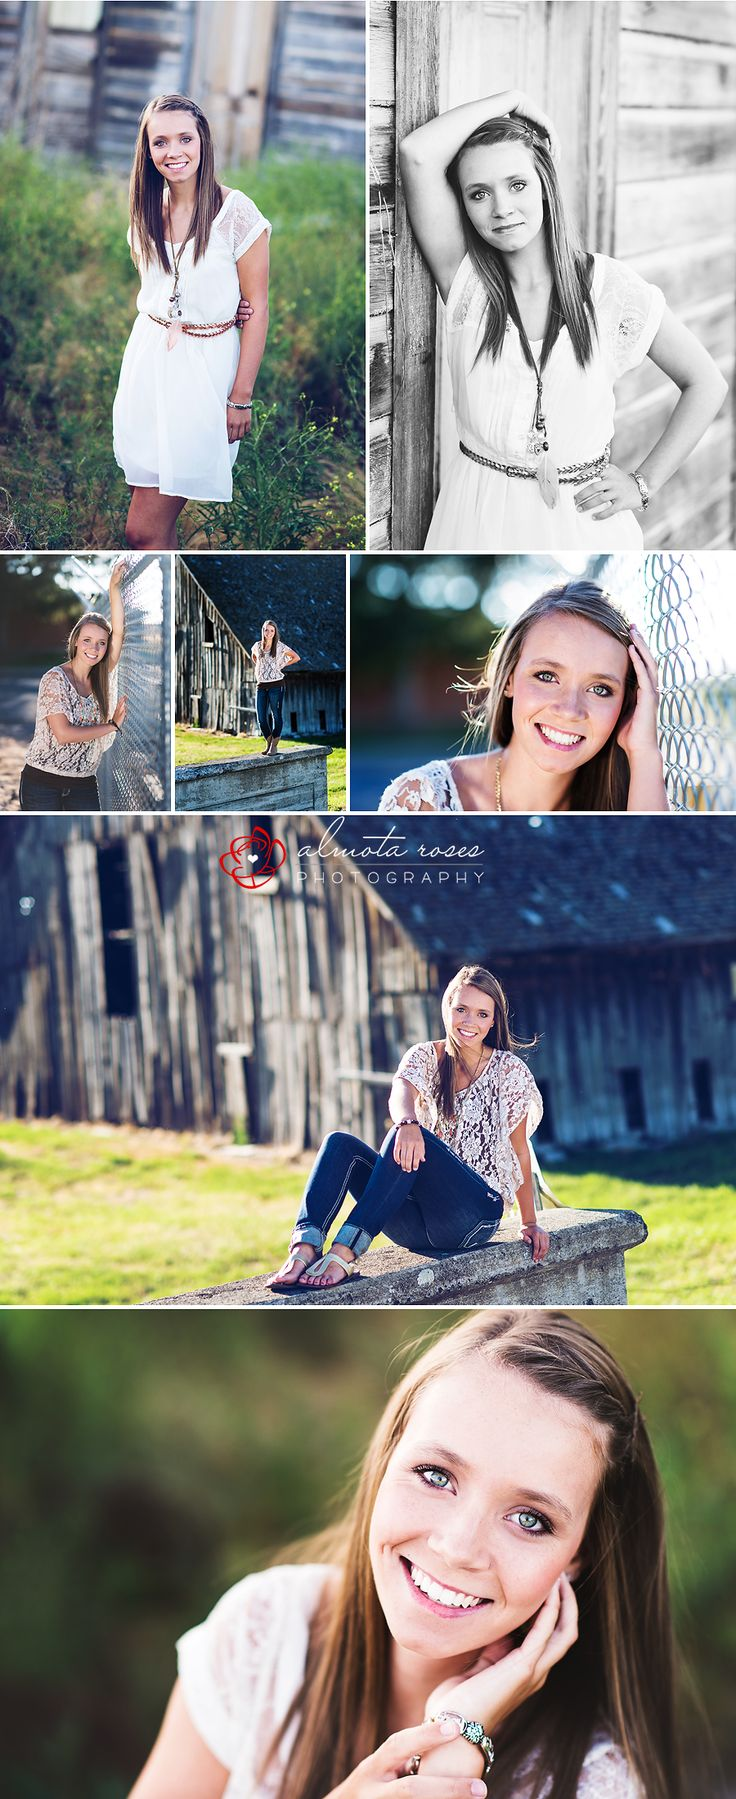 what cheer senior dating site Some great pose ideas for cheer photos- single and group find this  dating for  seniors is now effortless thanks to our amazing senior dating site meet other.